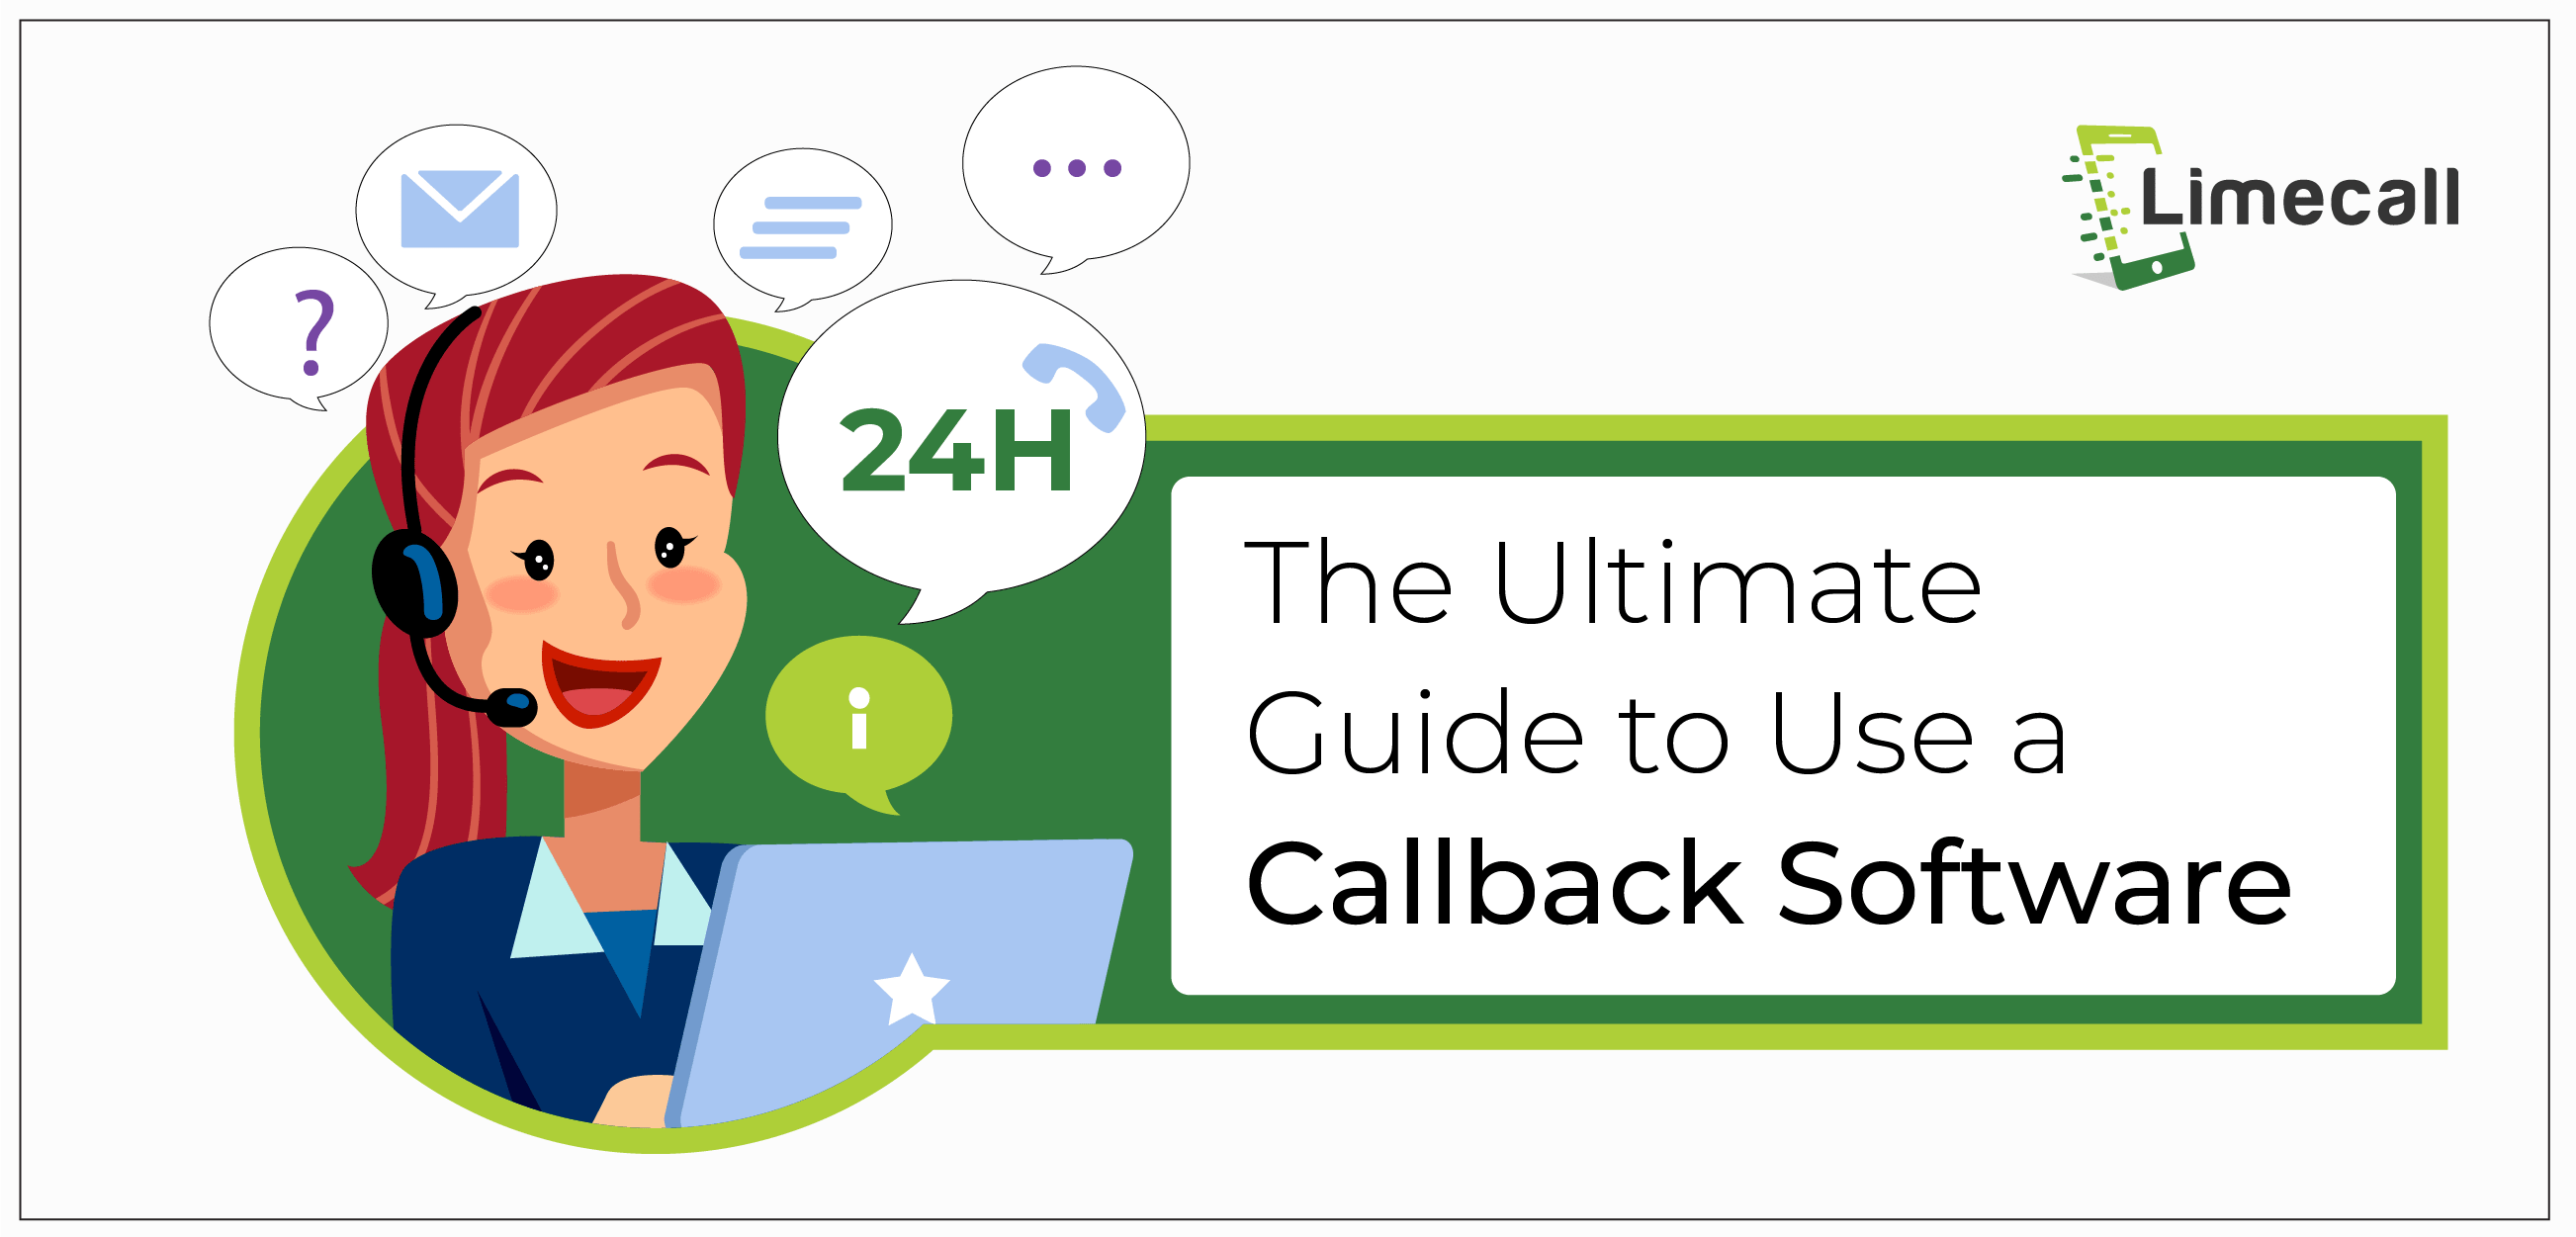 The Ultimate Guide to Use a Callback Software